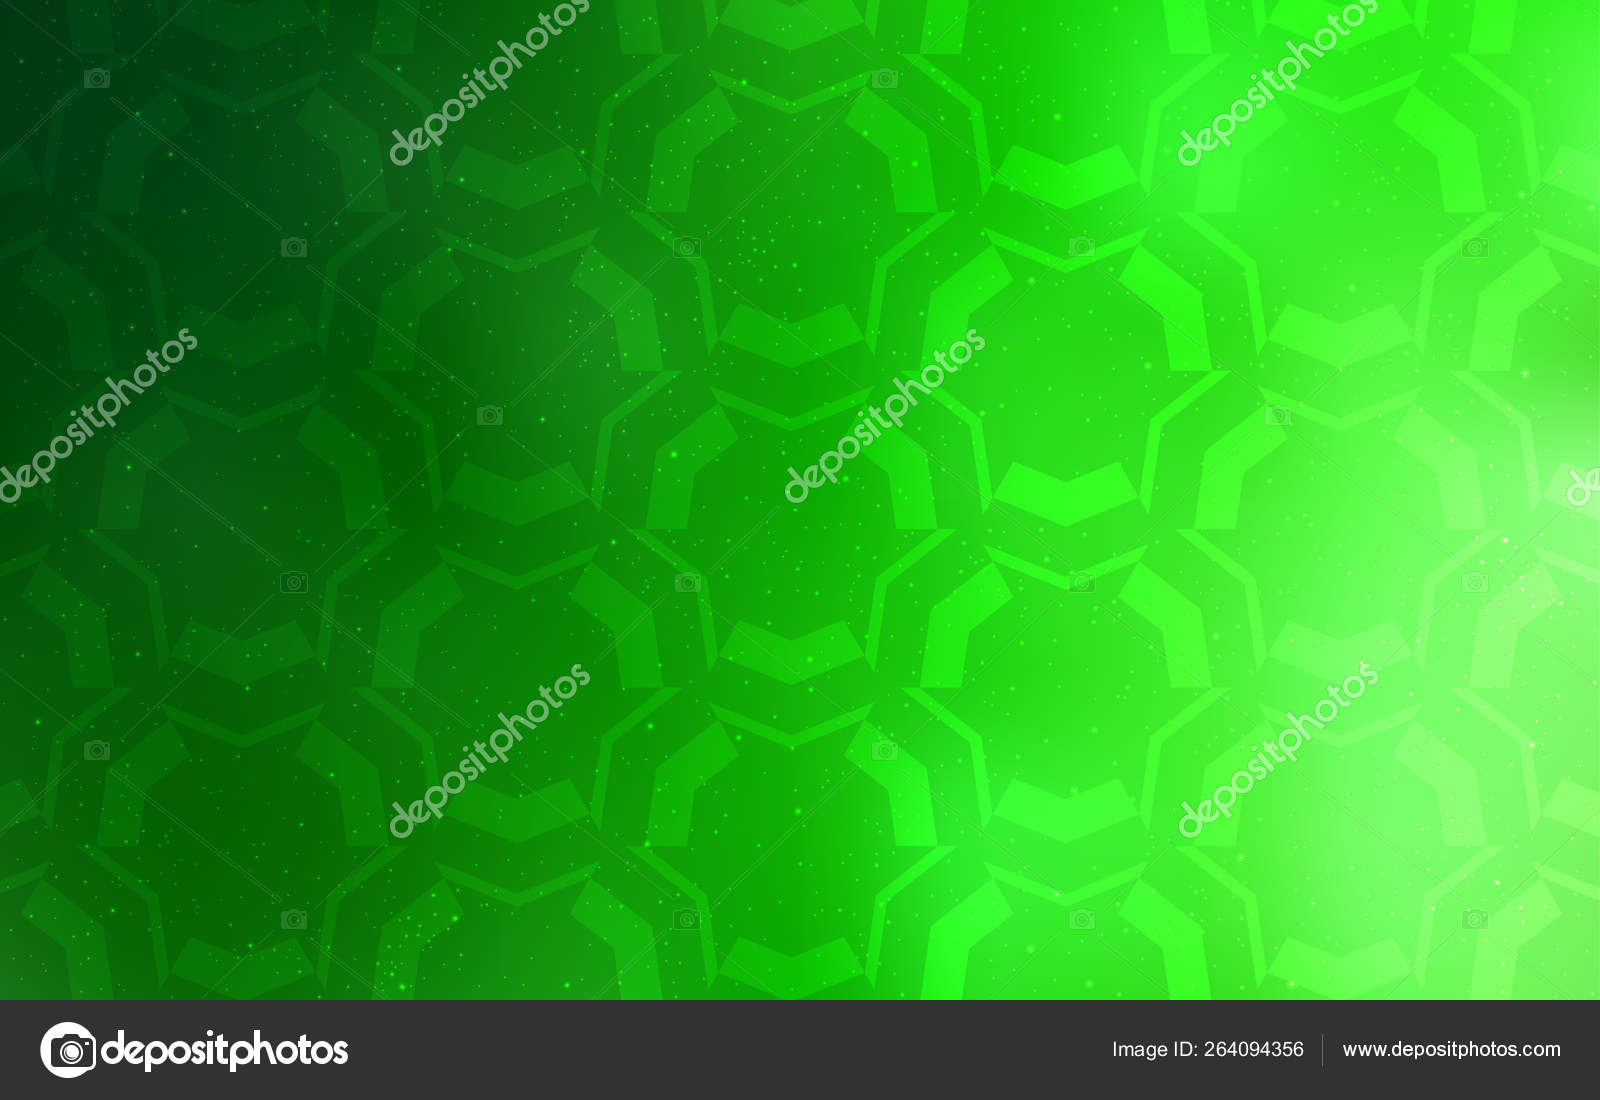 Light Green Vector Background Bent Lines Circumflex Abstract